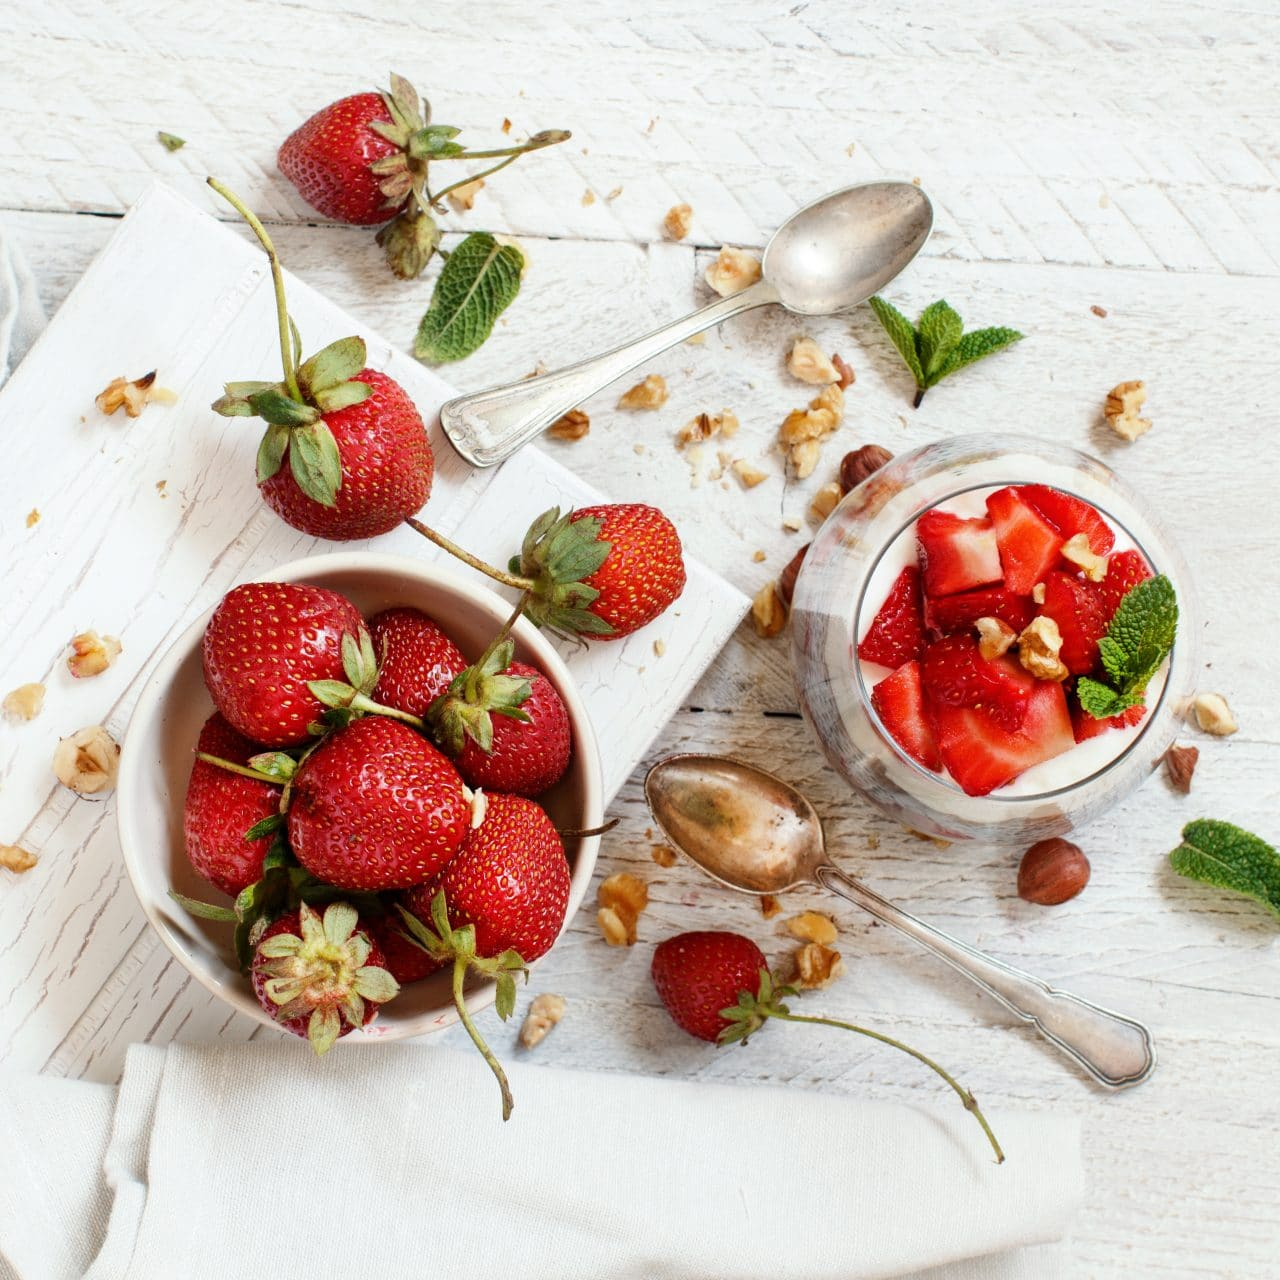 Chia pudding Strawberry parfait (c) by katrinshine licensed via envato